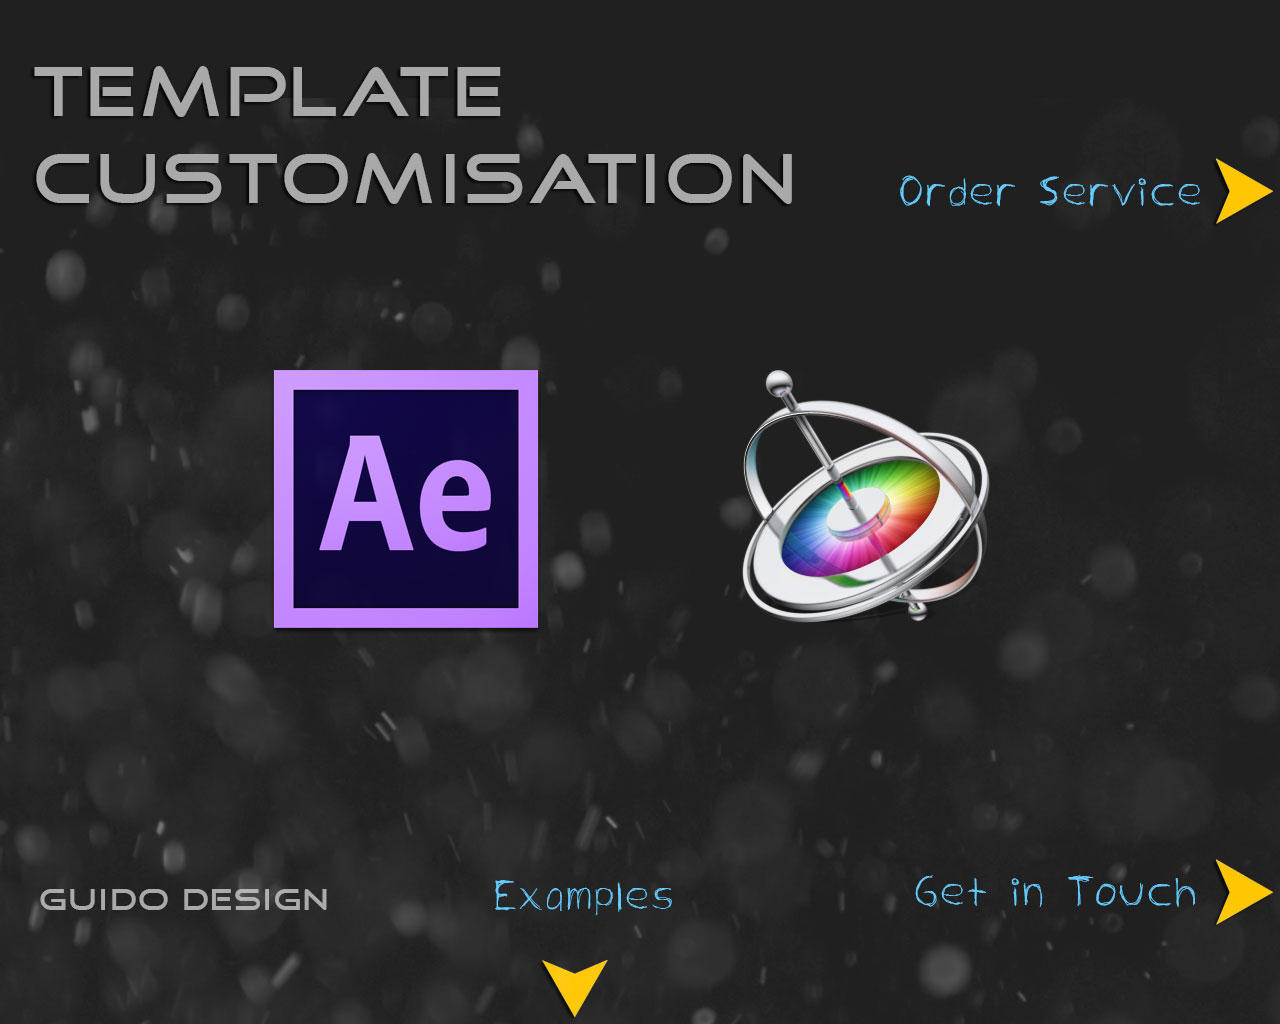 Professional After Effects - Apple Motion 5 Customization Template by GuidoDesign - 64210